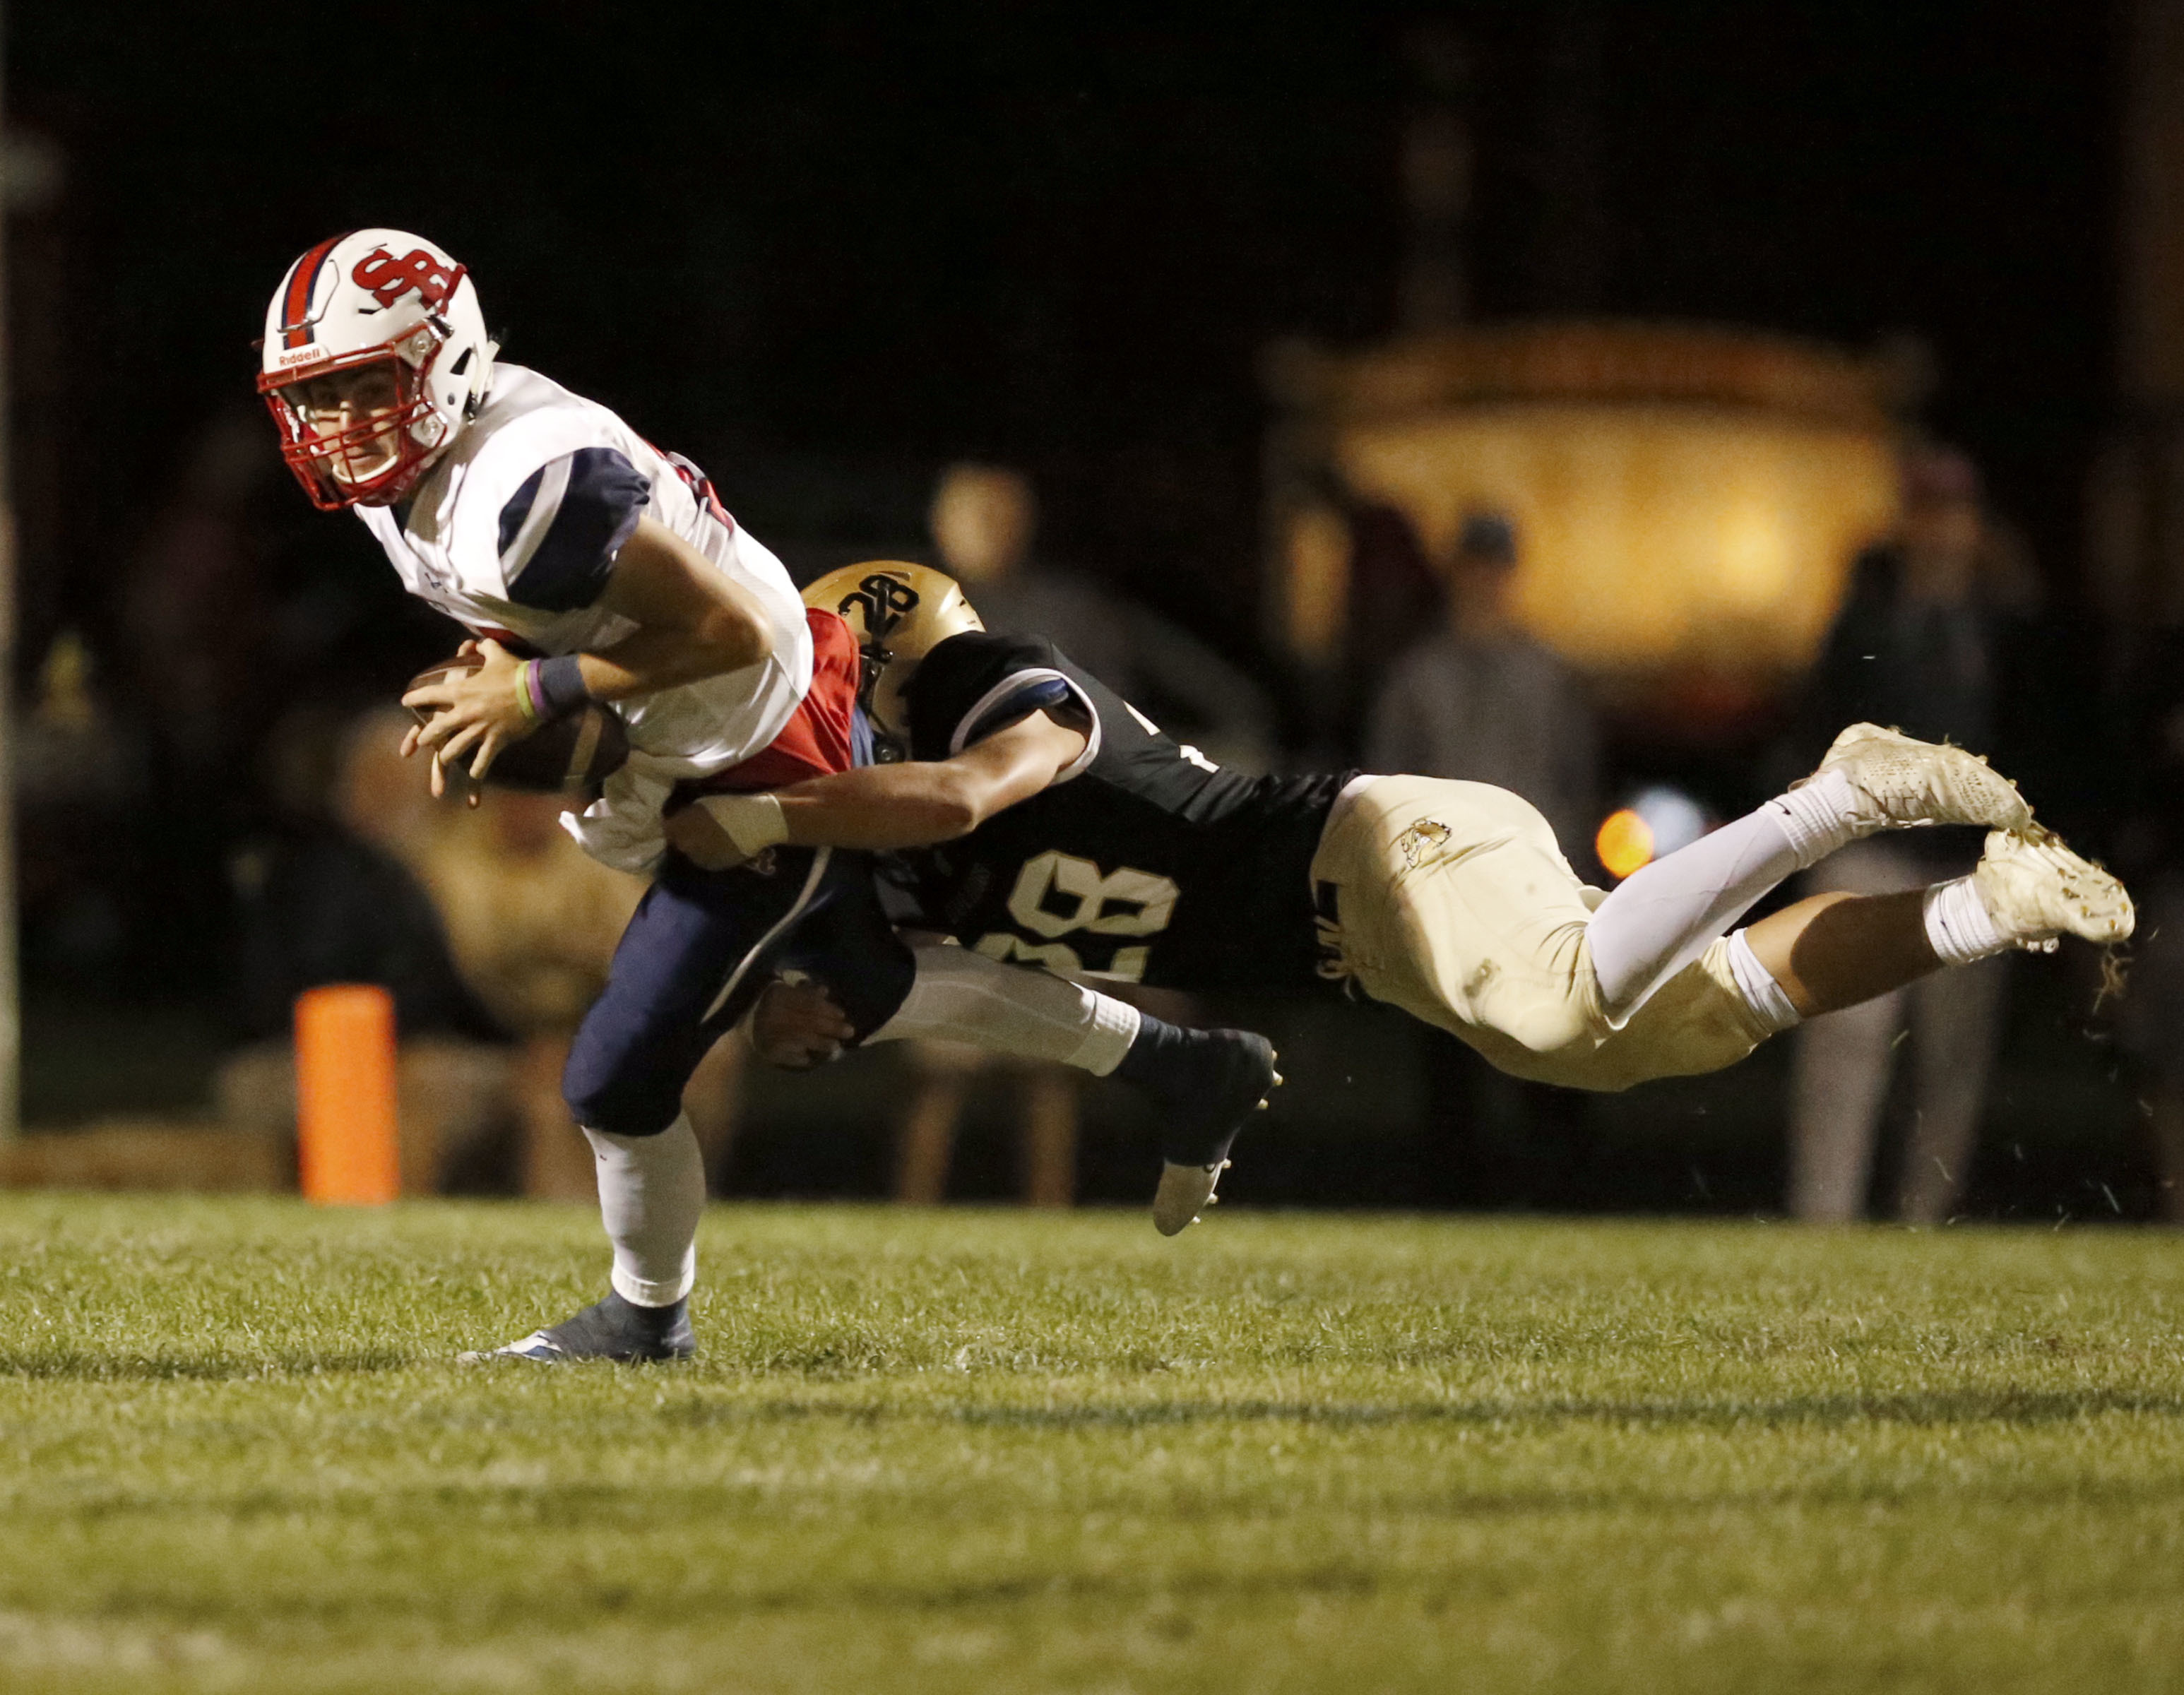 St. Rita's Brian Johnson (14) is tackled for a loss by Richards' Nick Houston (28).